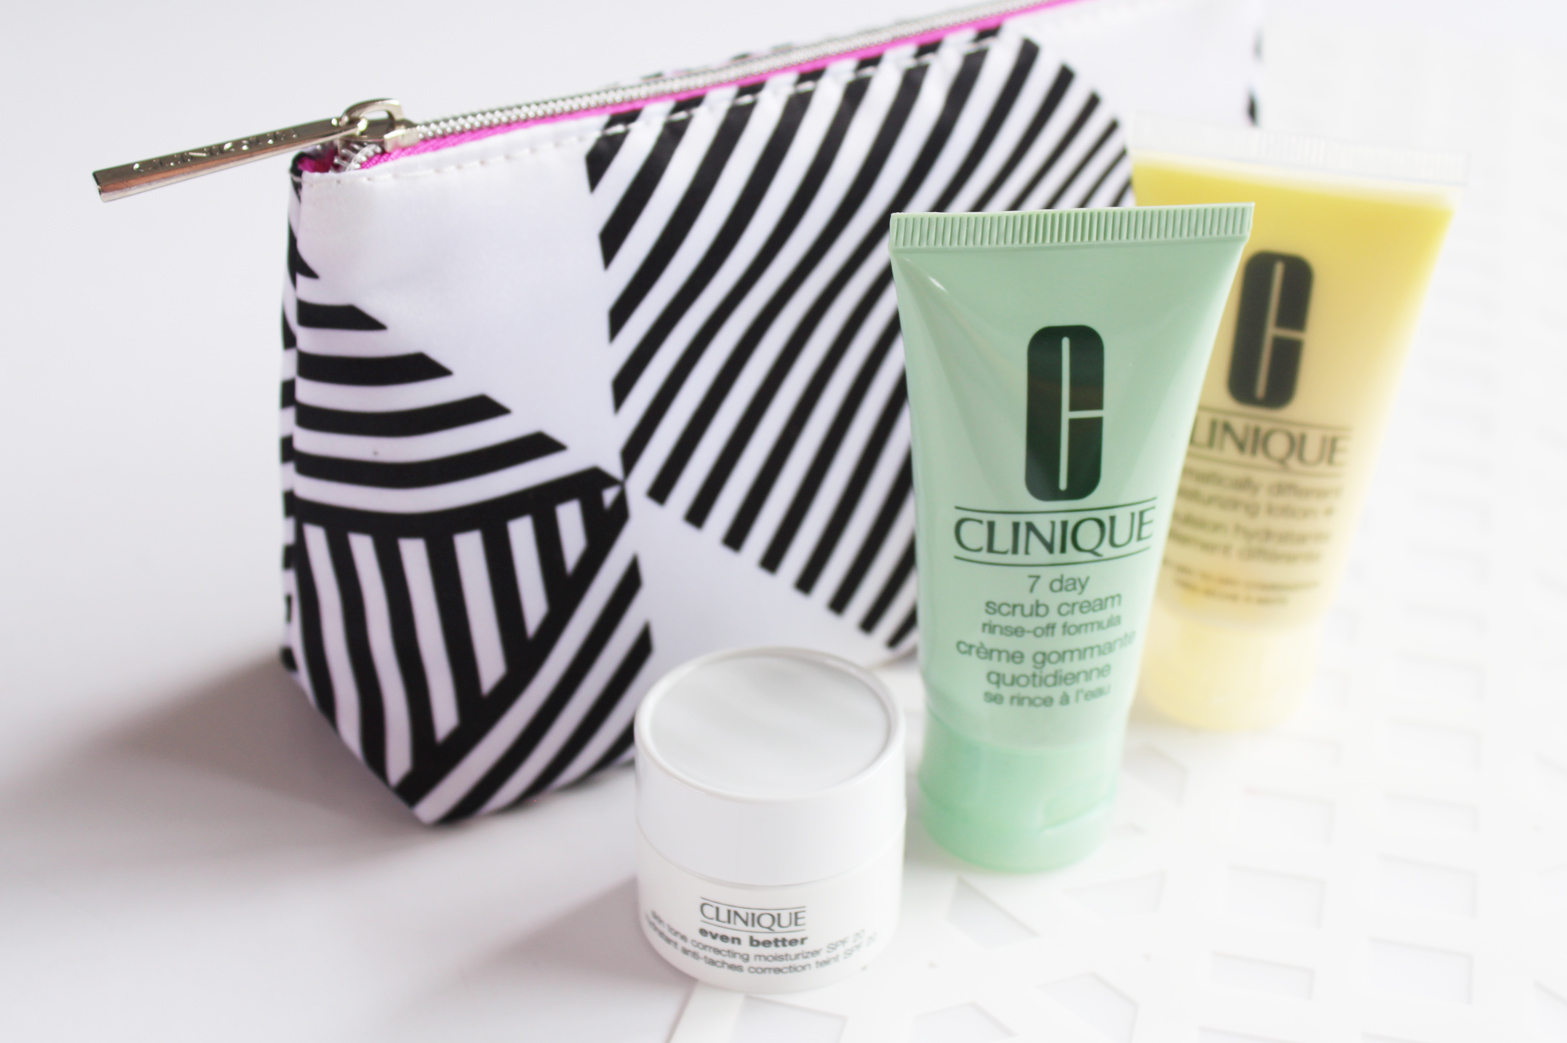 CLINIQUE | Gift With Purchase March '16 - CassandraMyee